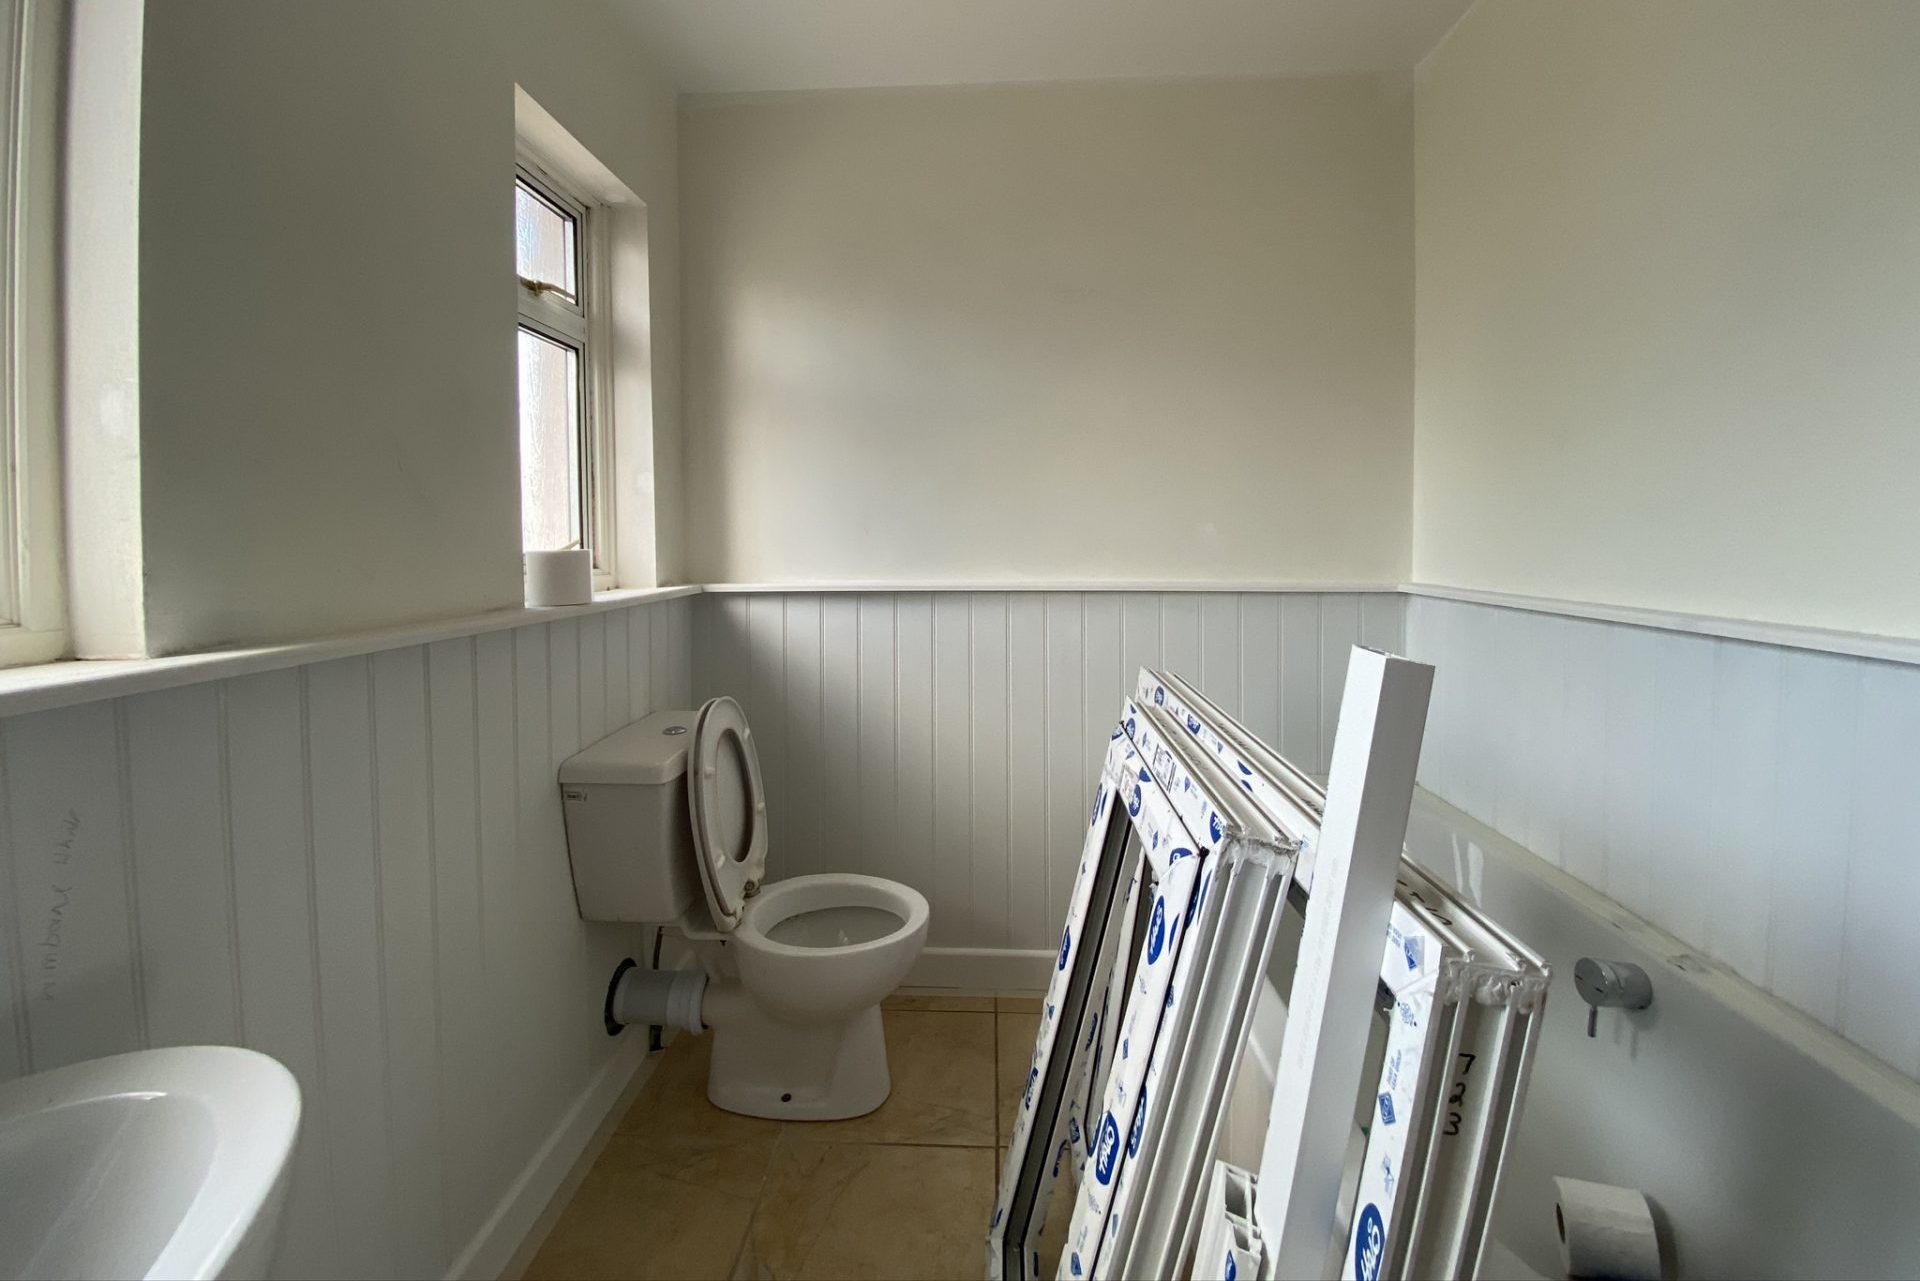 Hortons Bathroom Before decoration